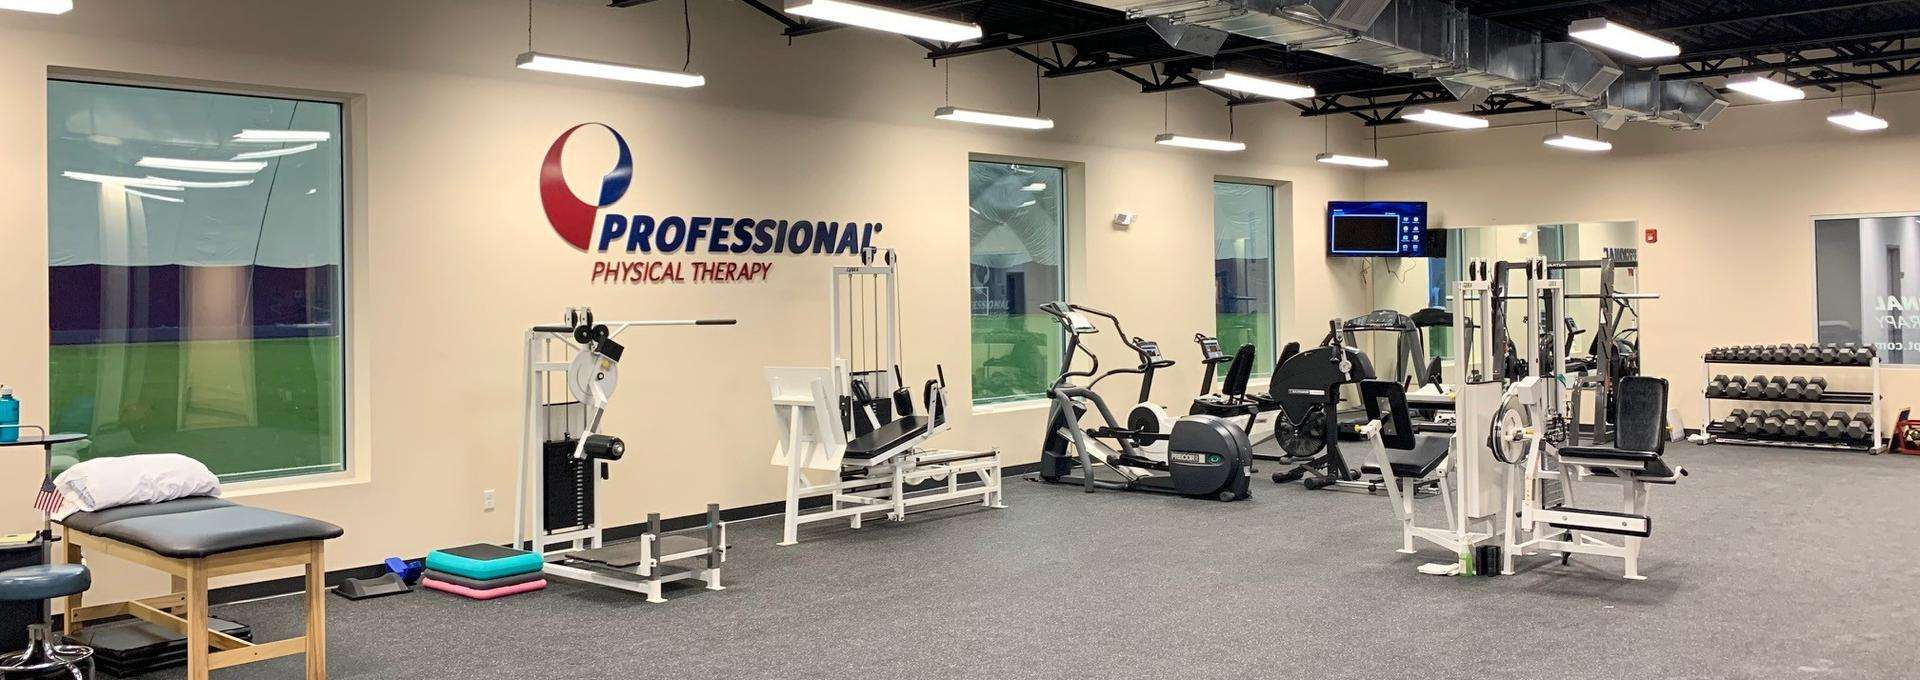 Inside of our physical therapy and sports medicine clinic in Florham Park New Jersey with our turf athletic training field in the background.